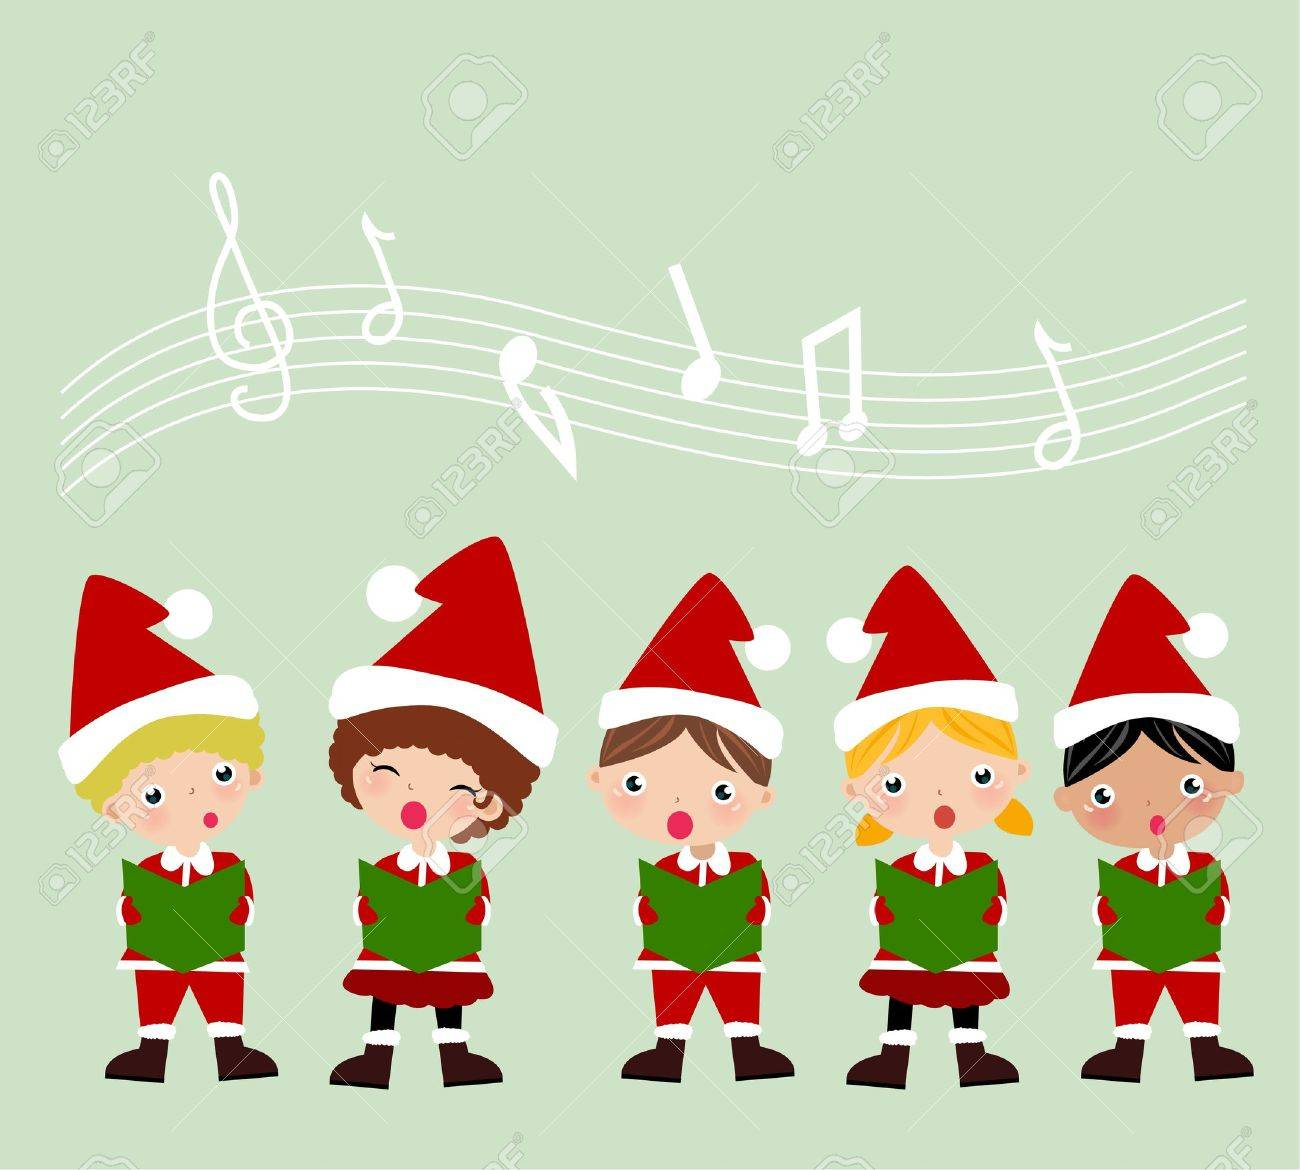 Christmas Carol Stock Vector - 9775317